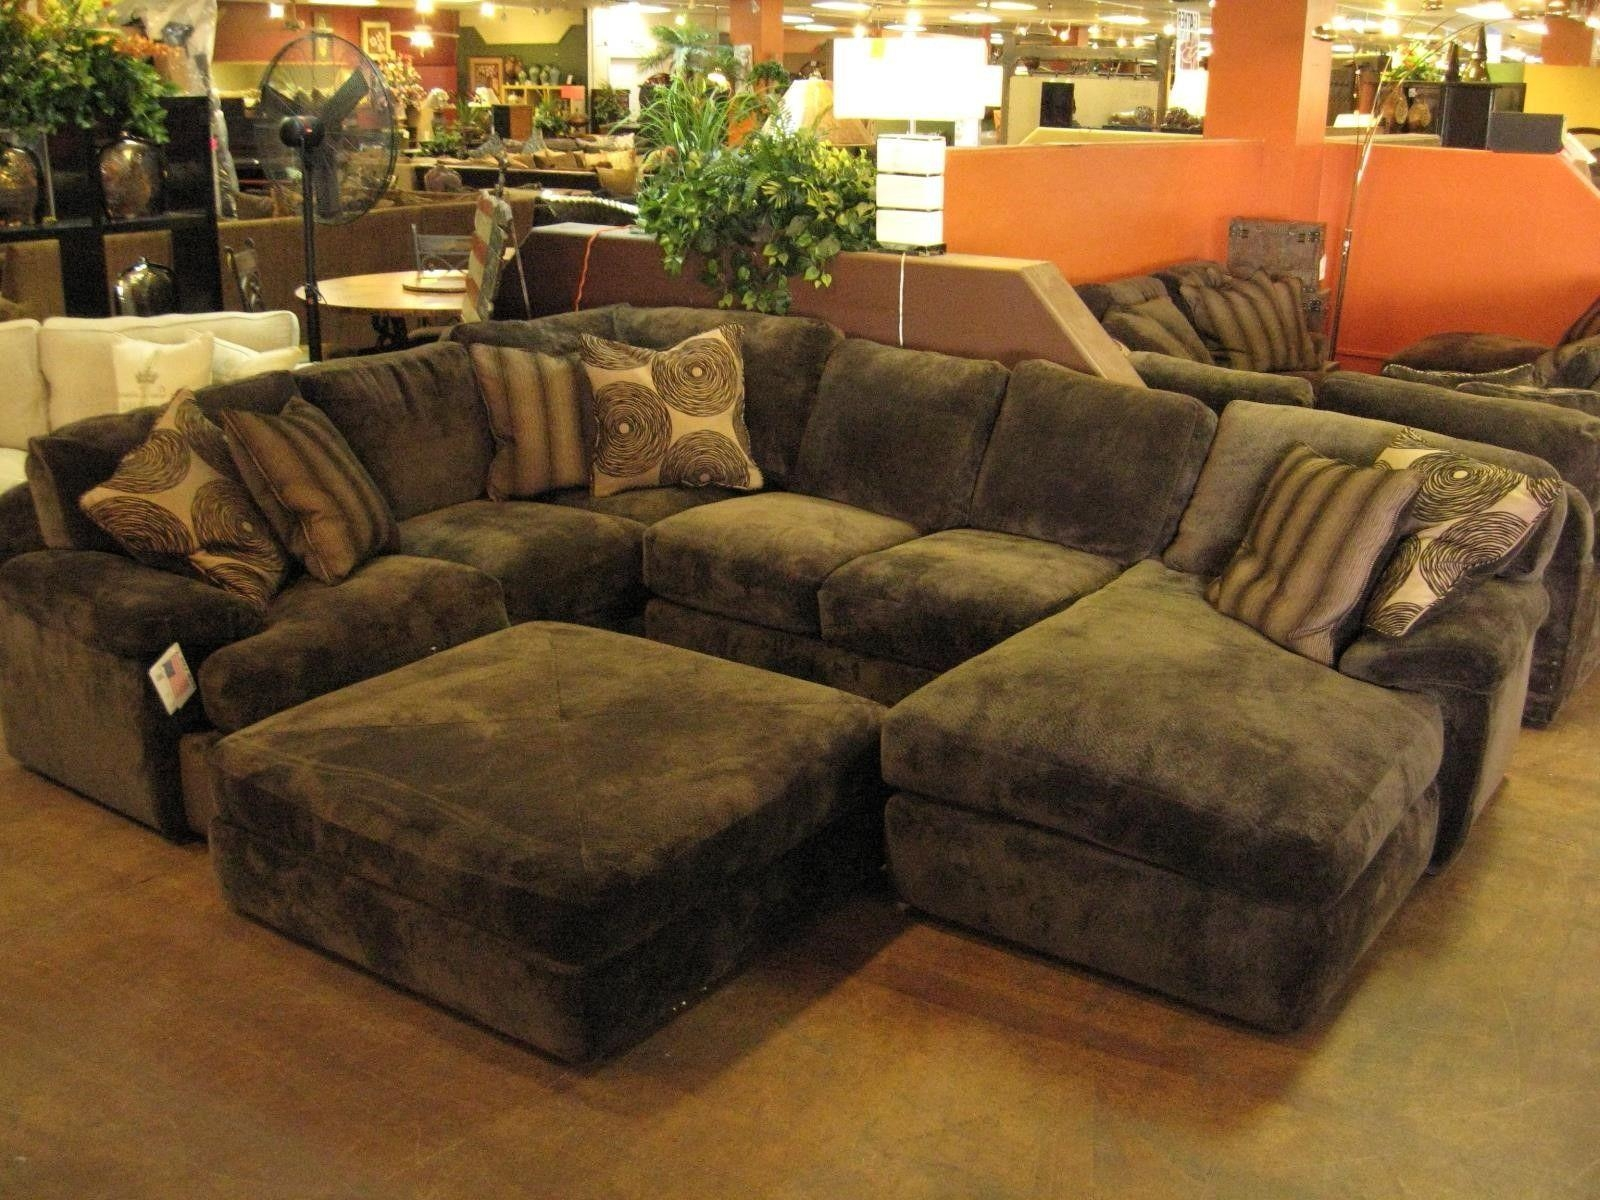 Large Sectional Couch 20 Best Large S...